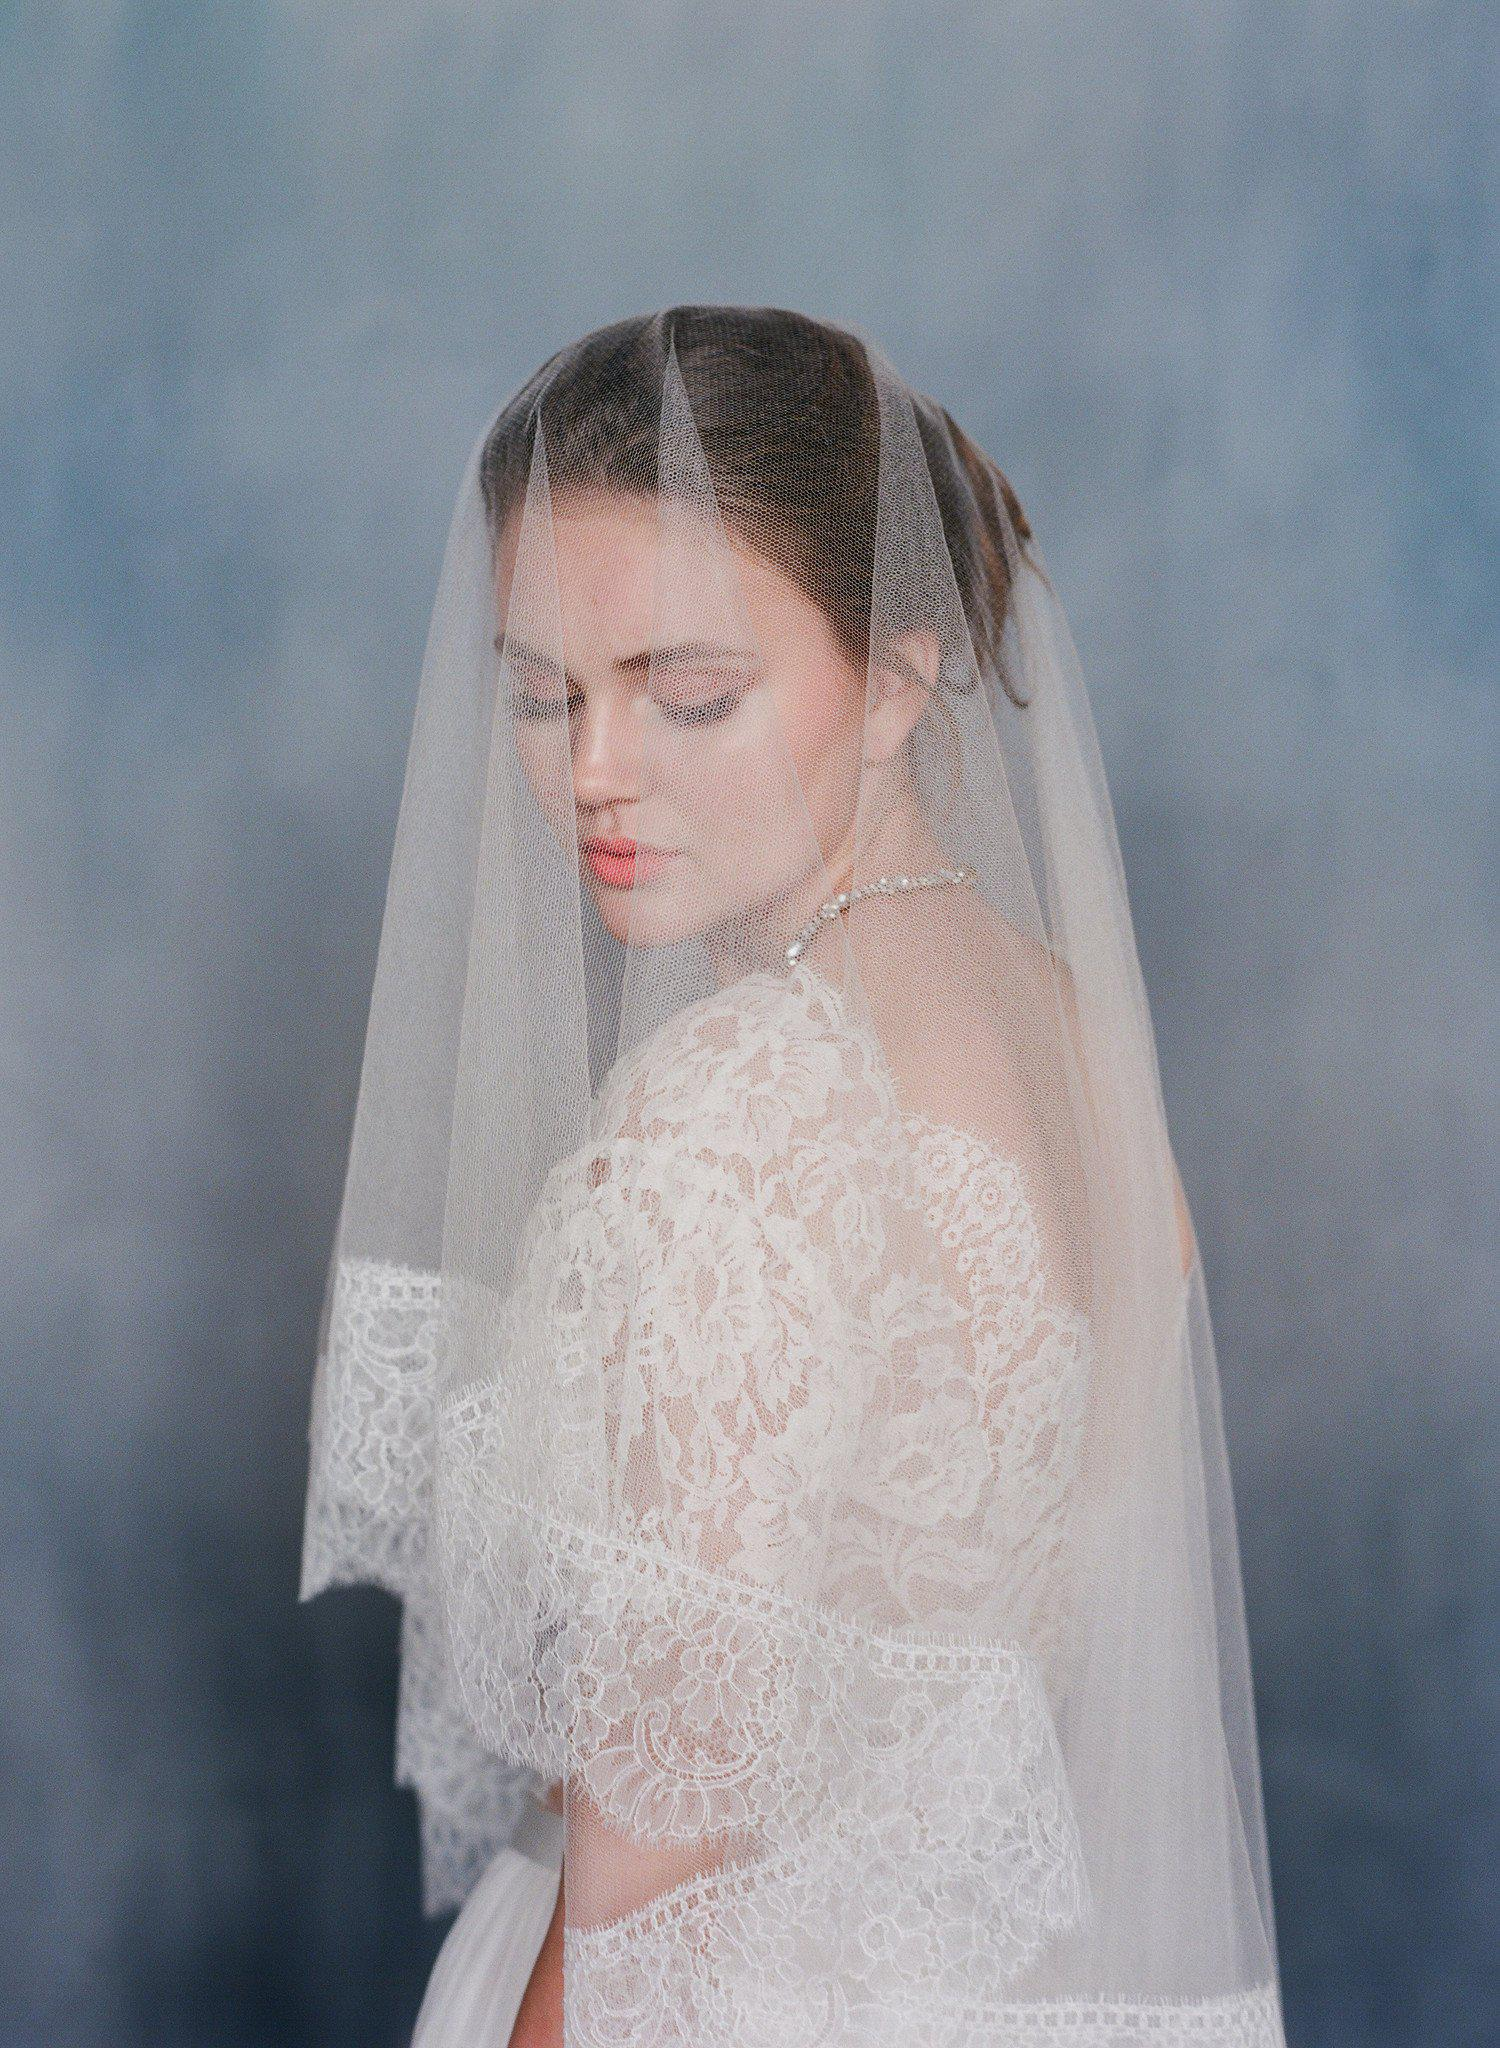 Women wearing a sheer silk veil with ivory lace trim